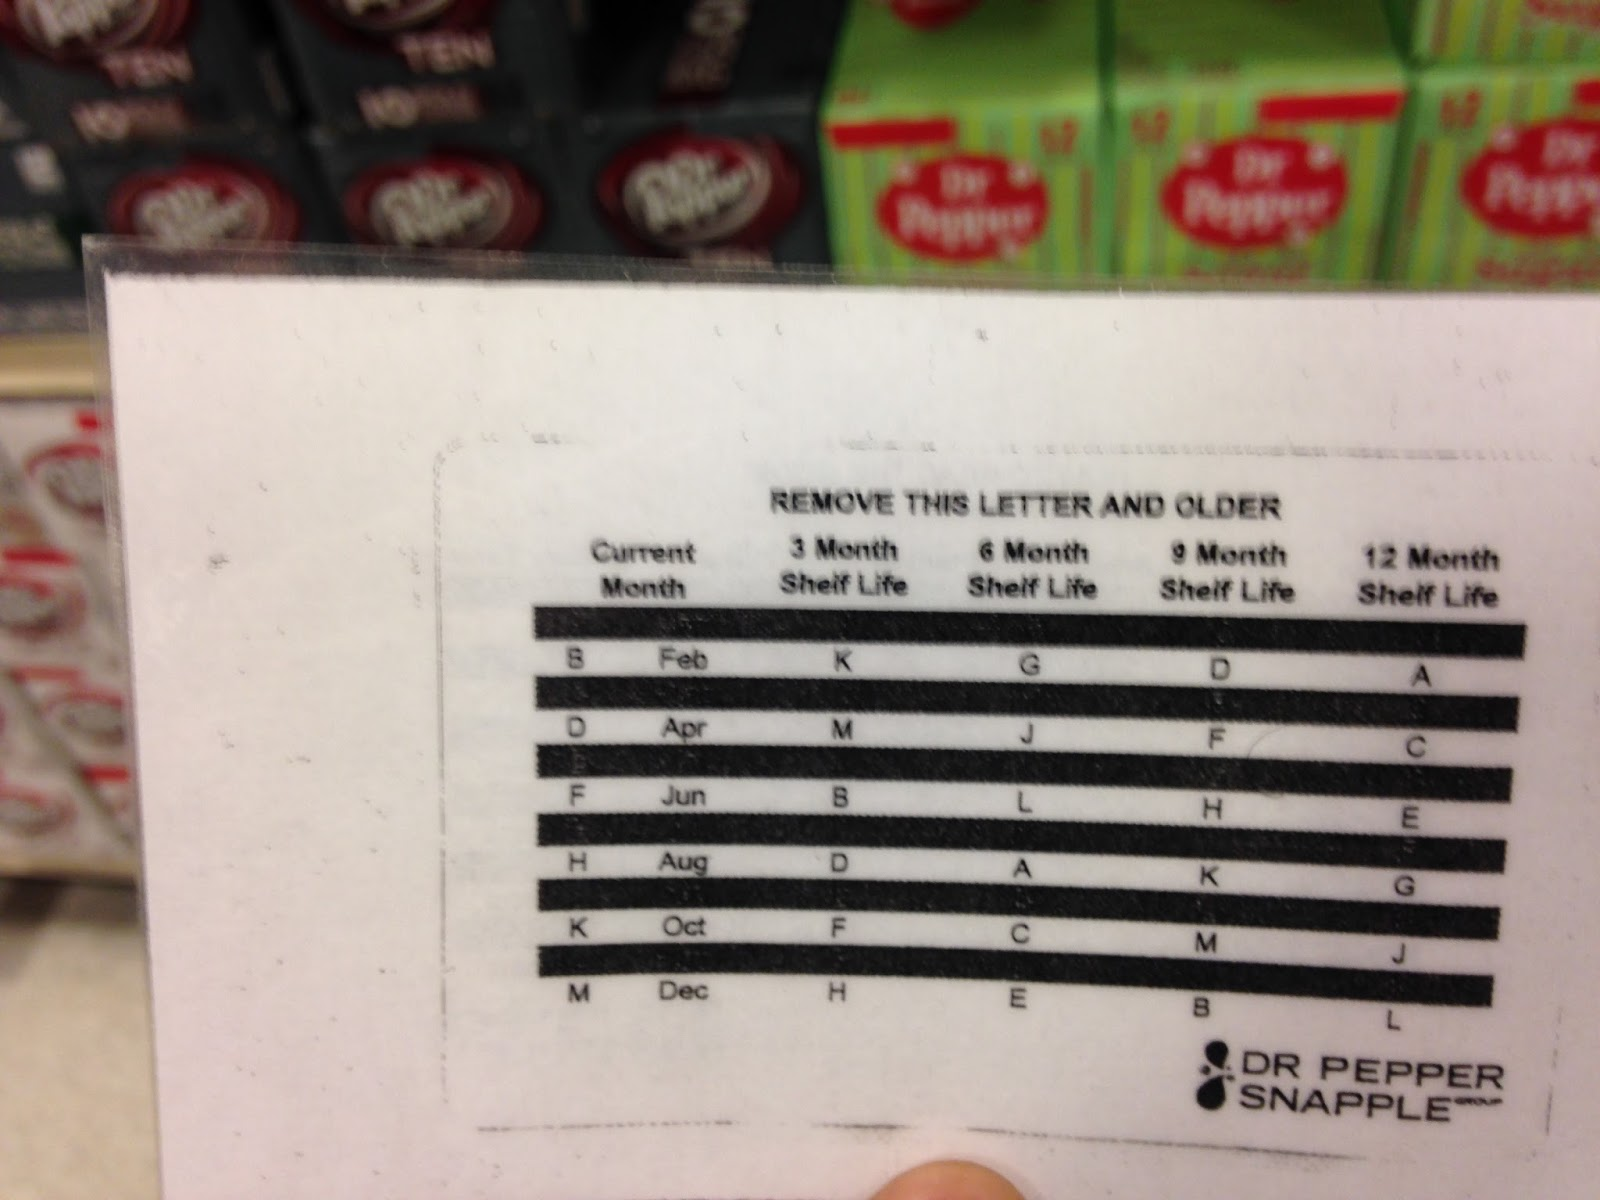 The Next Fifty Years: How to Find the Expiration Date of Dr Pepper